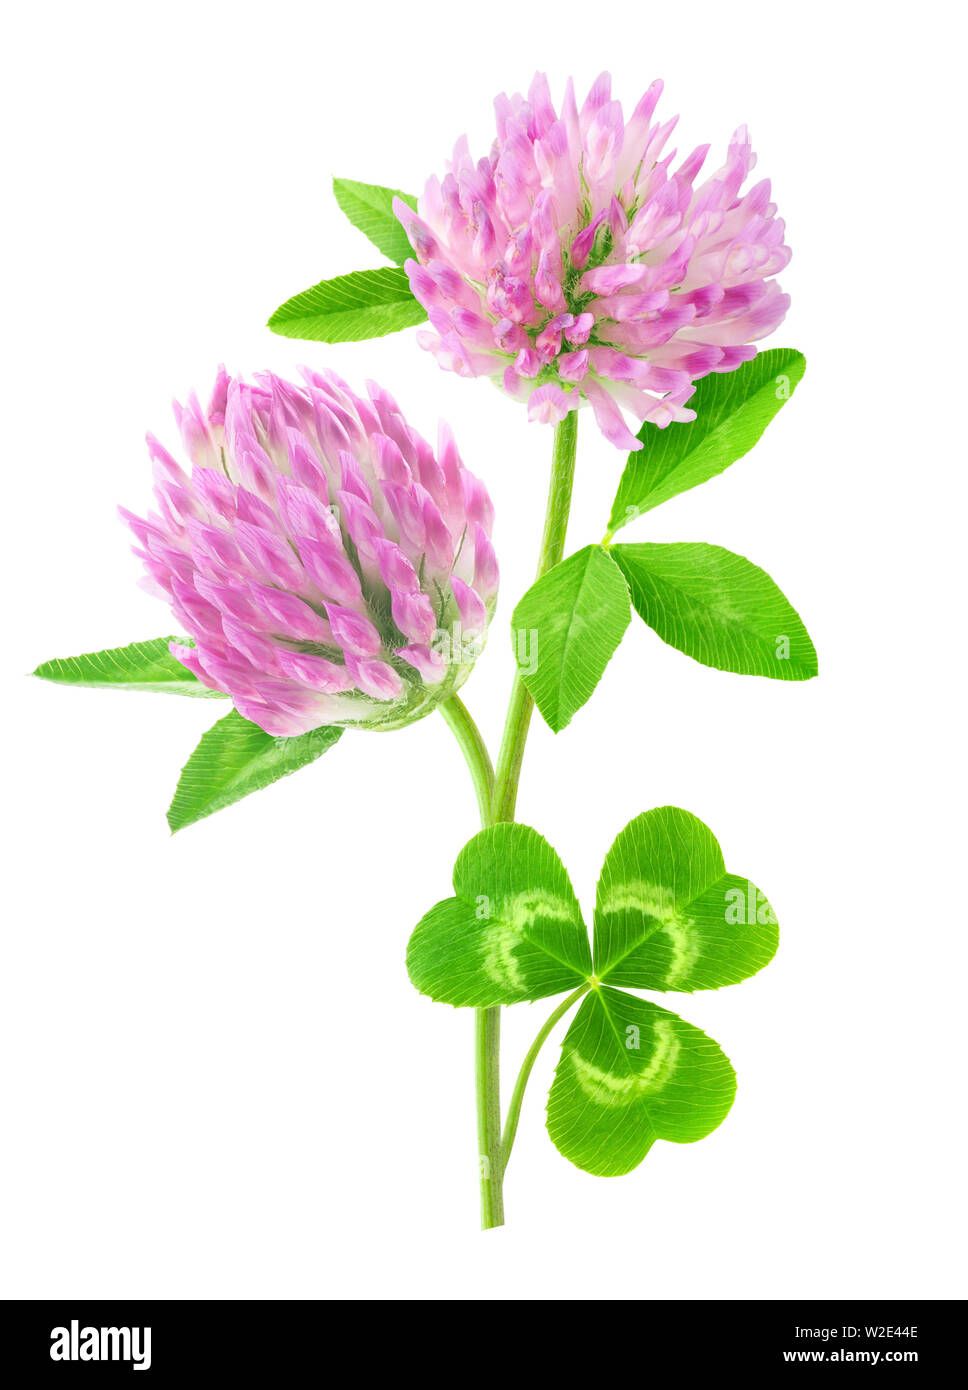 Isolated flower. Pink clover with stem and leaves isolated on white background with clipping path Stock Photo